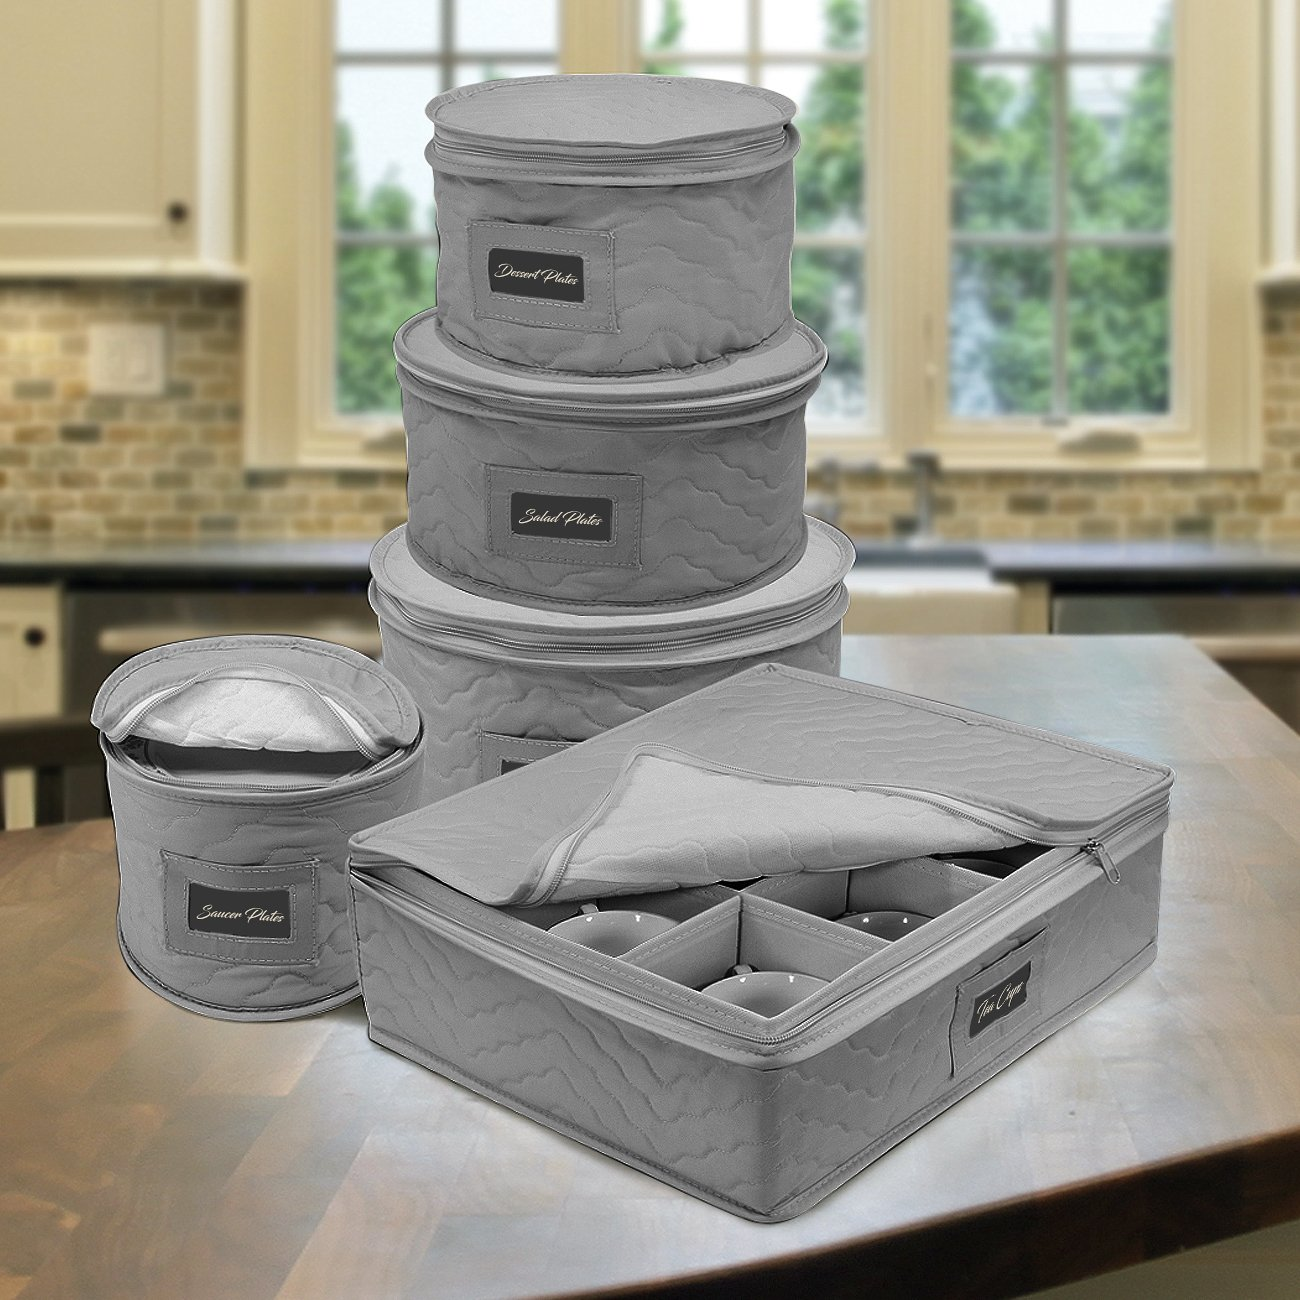 Sorbus Dinnerware Storage 5-Piece Set for Protecting or Transporting Dinnerware — Service for 12 — Round Plate and Cup Quilted Protection, Felt Protectors for Plates, Fine China Case (Gray) by Sorbus (Image #2)